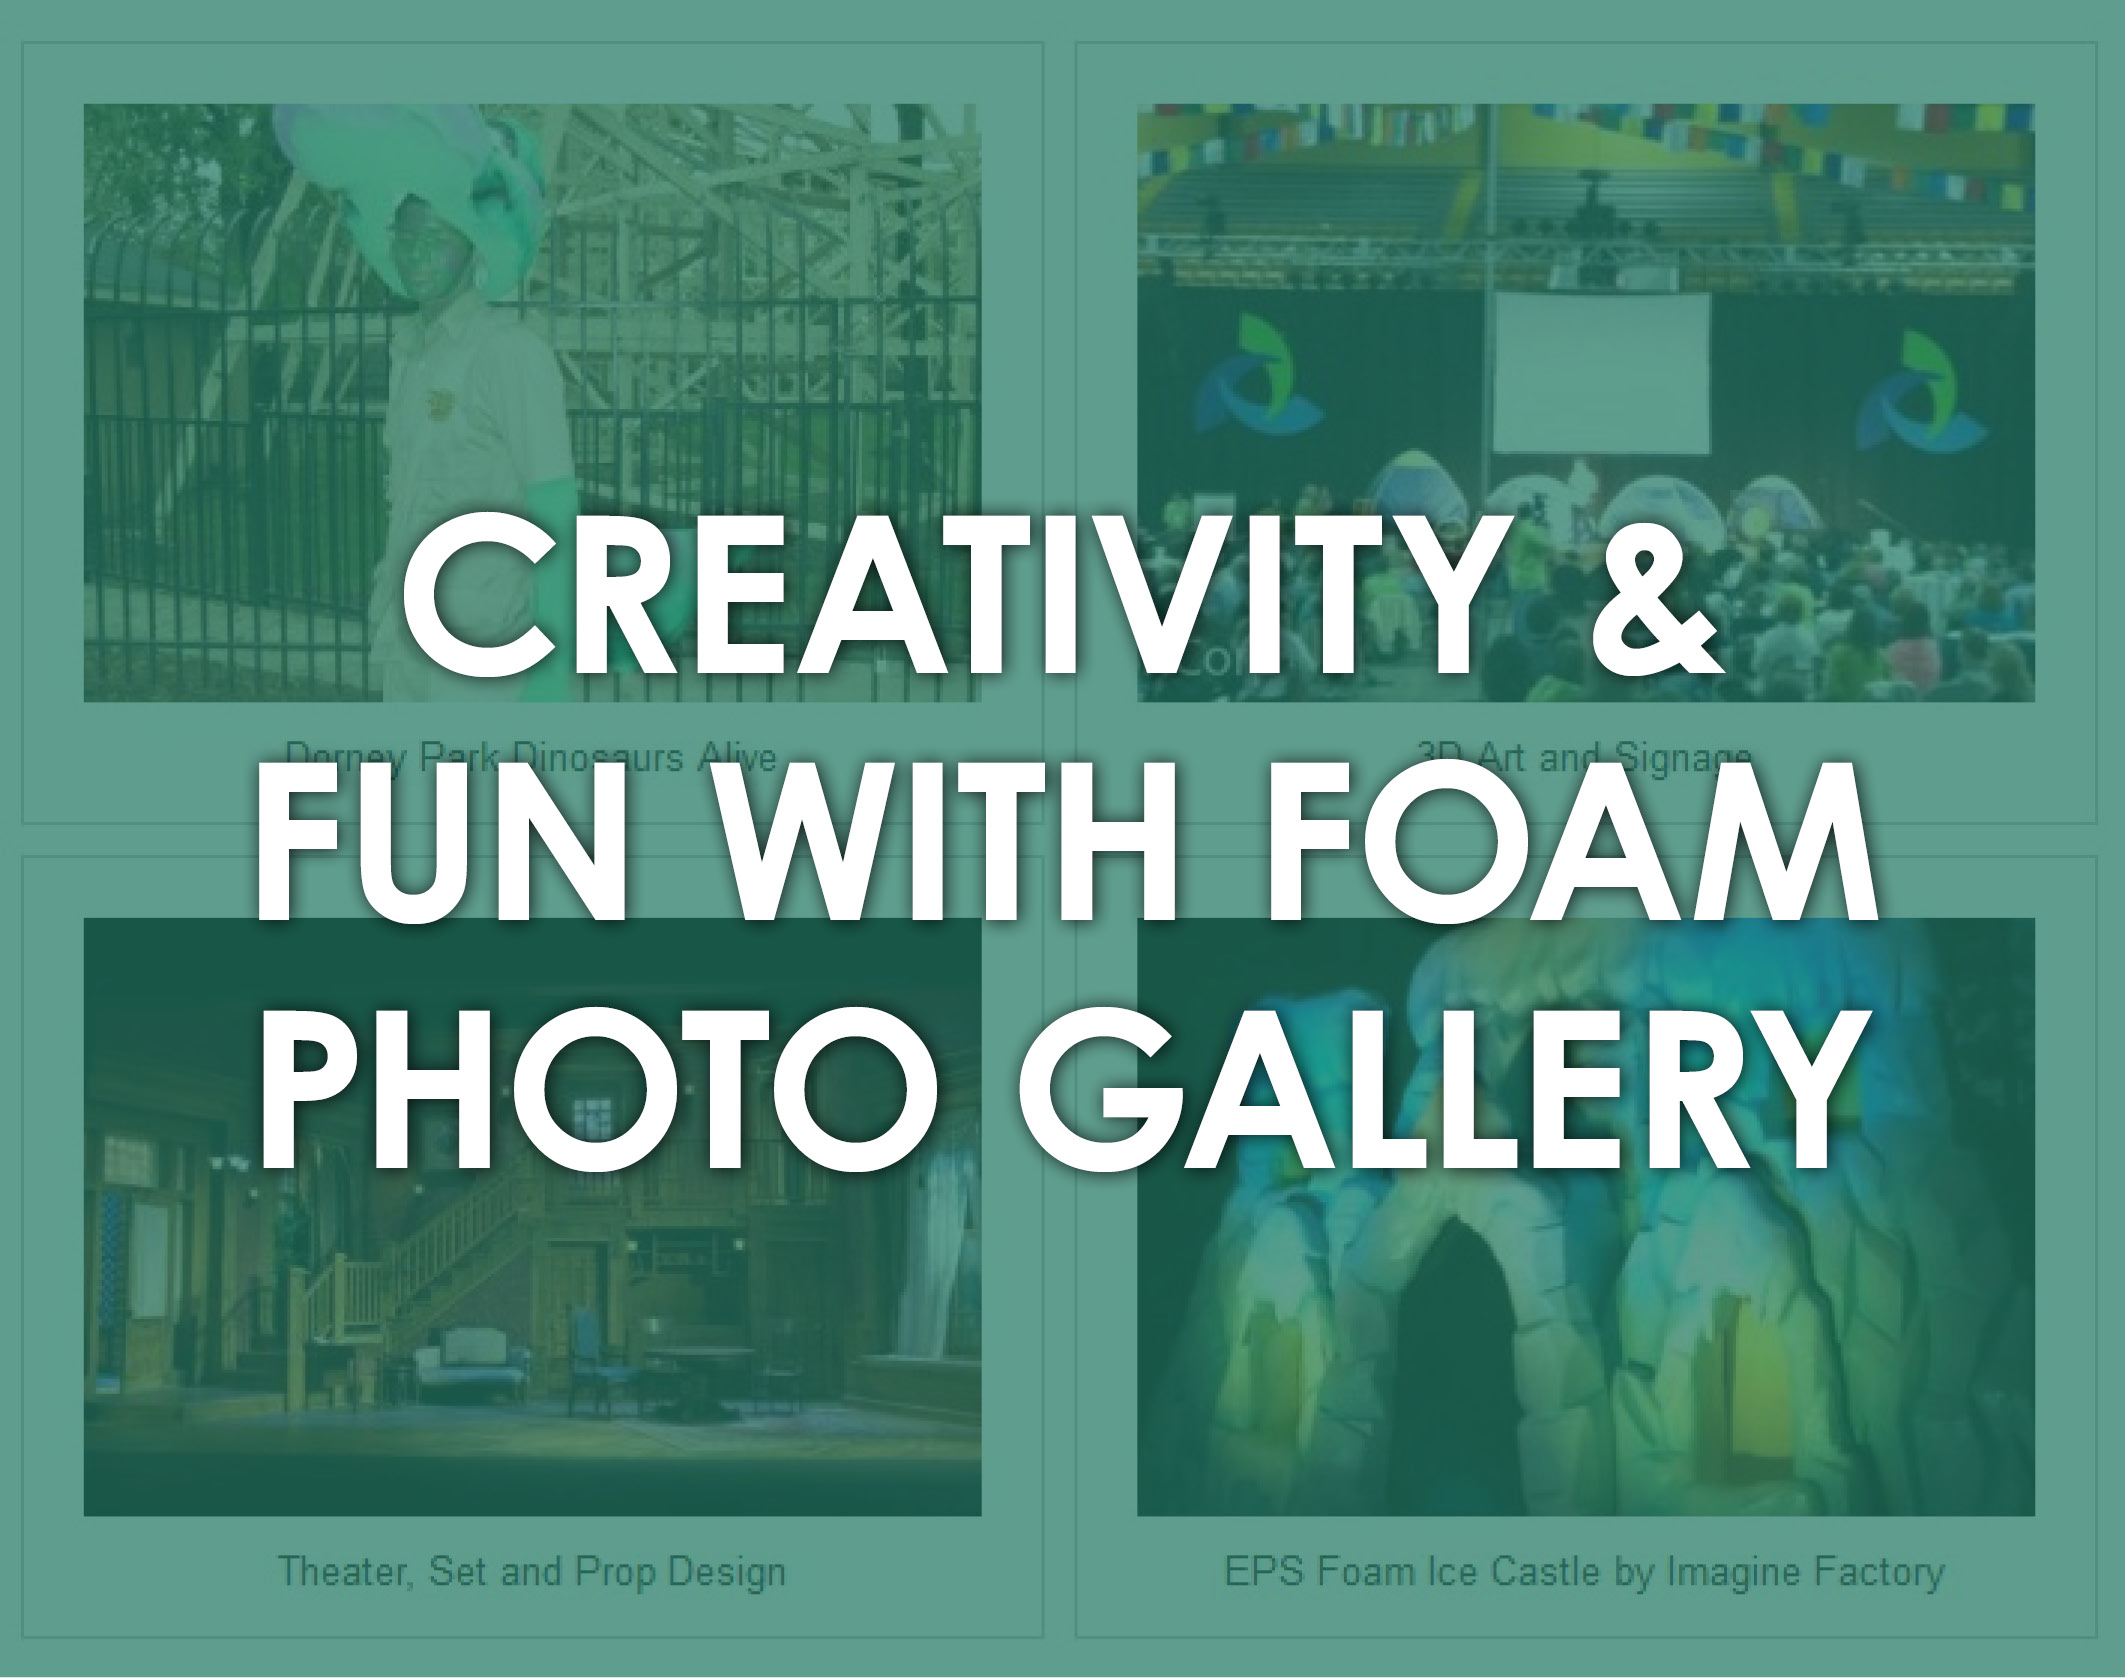 Creativity & Fun With Foam Photo Gallery by ICA